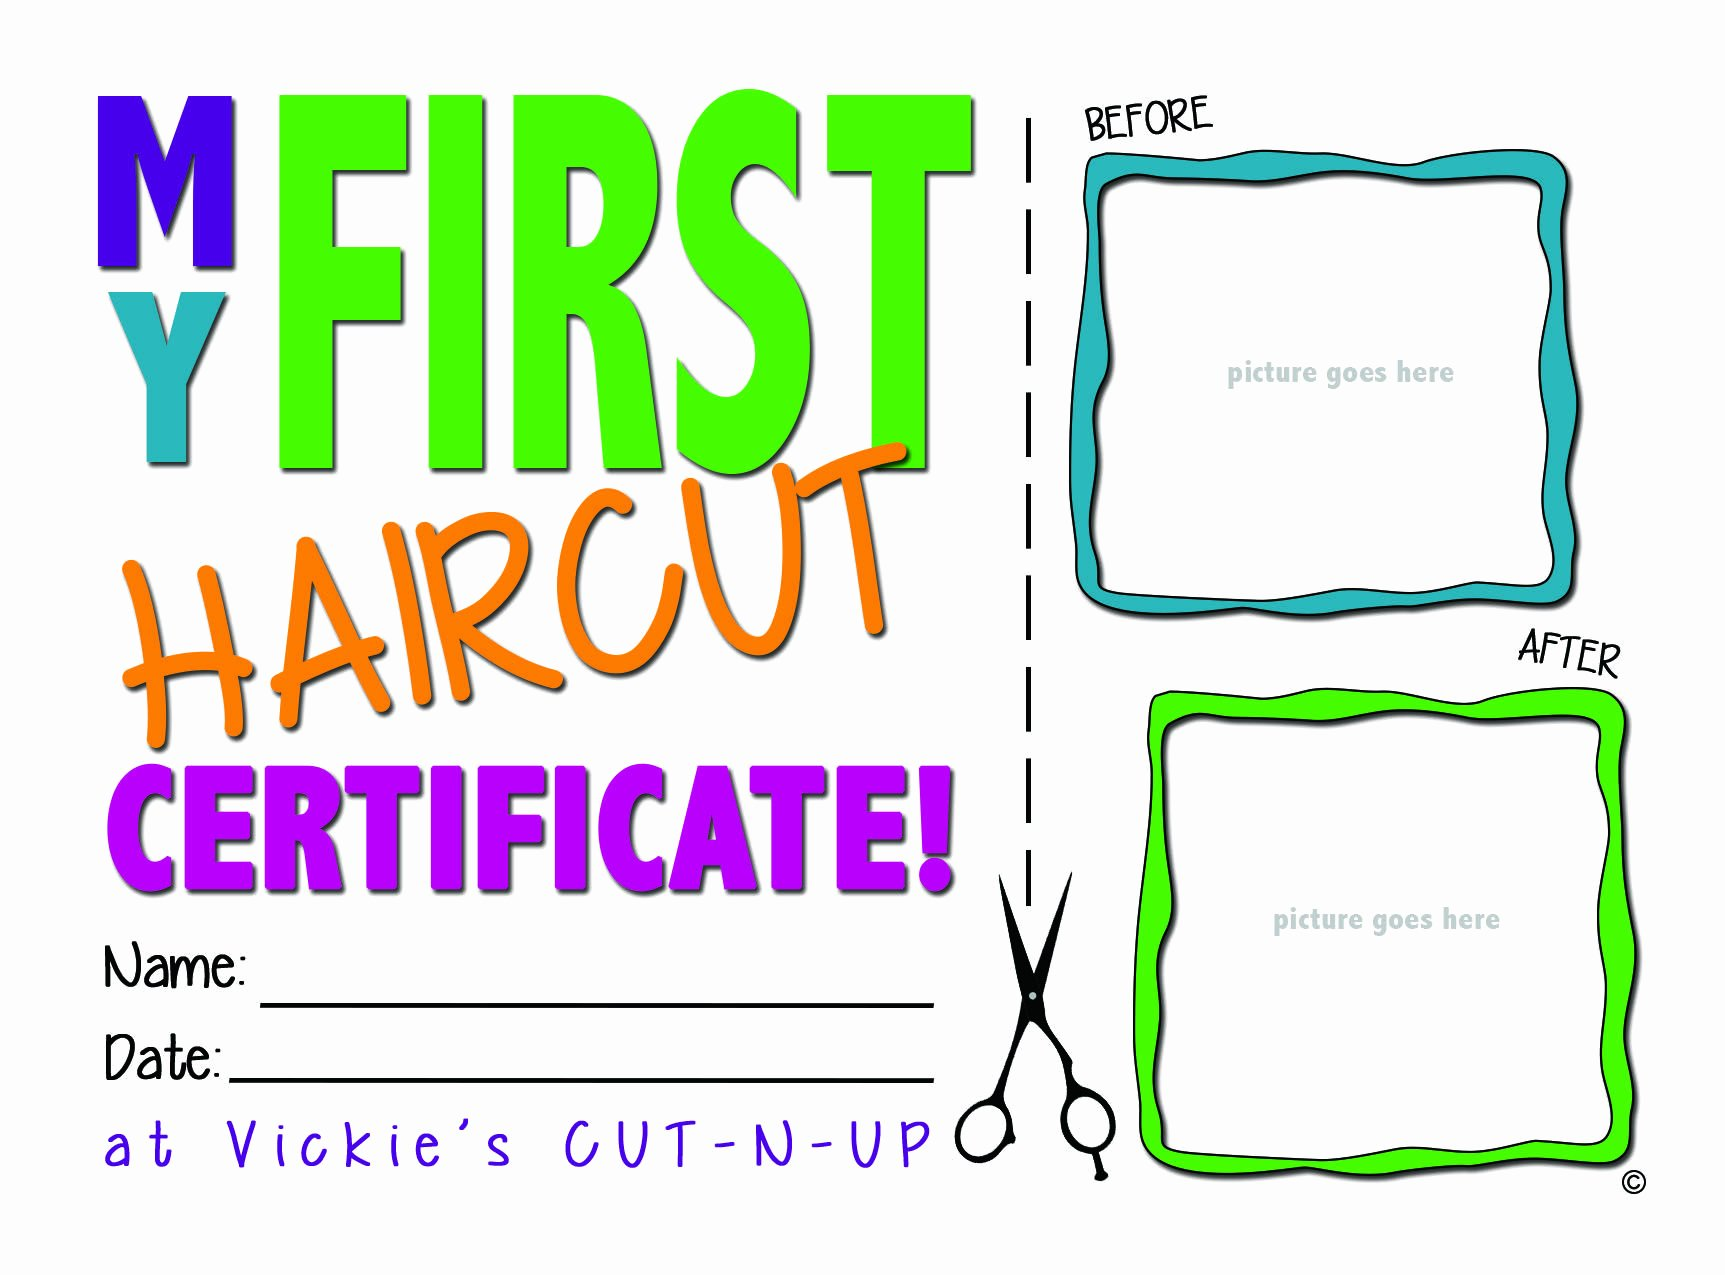 First Haircut Certificate Template Unique Printable Haircut Certificates Creativehobbyore